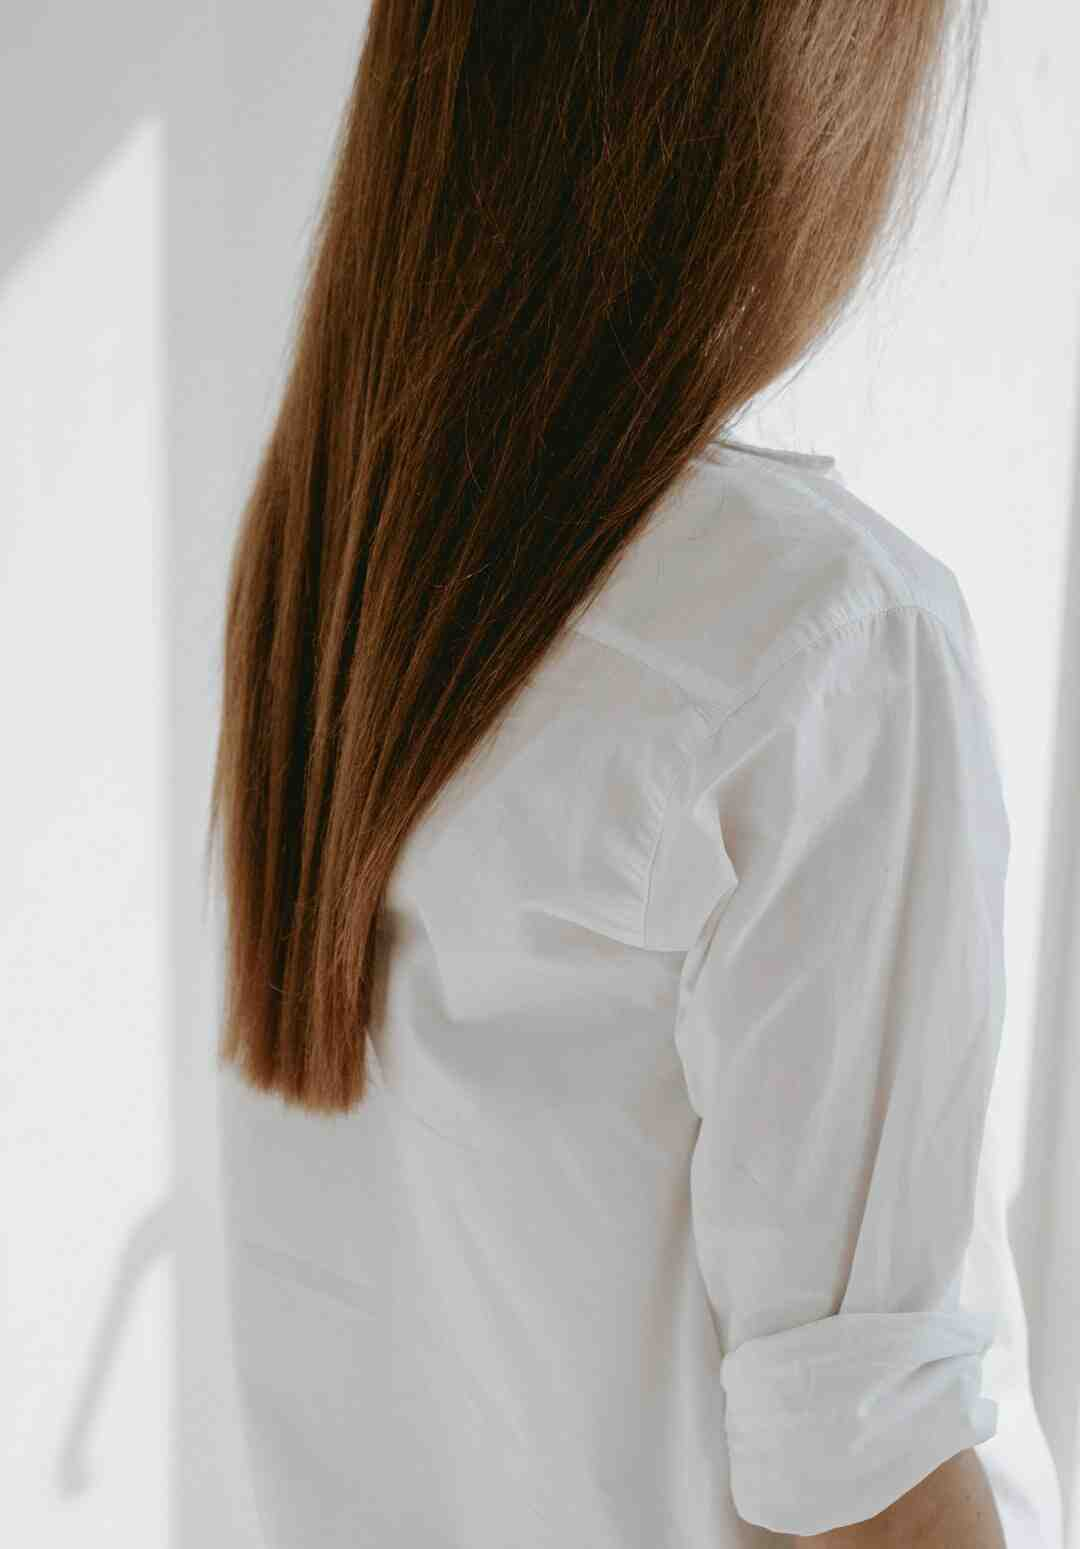 How do you get rid of frizzy Brazilian hair?